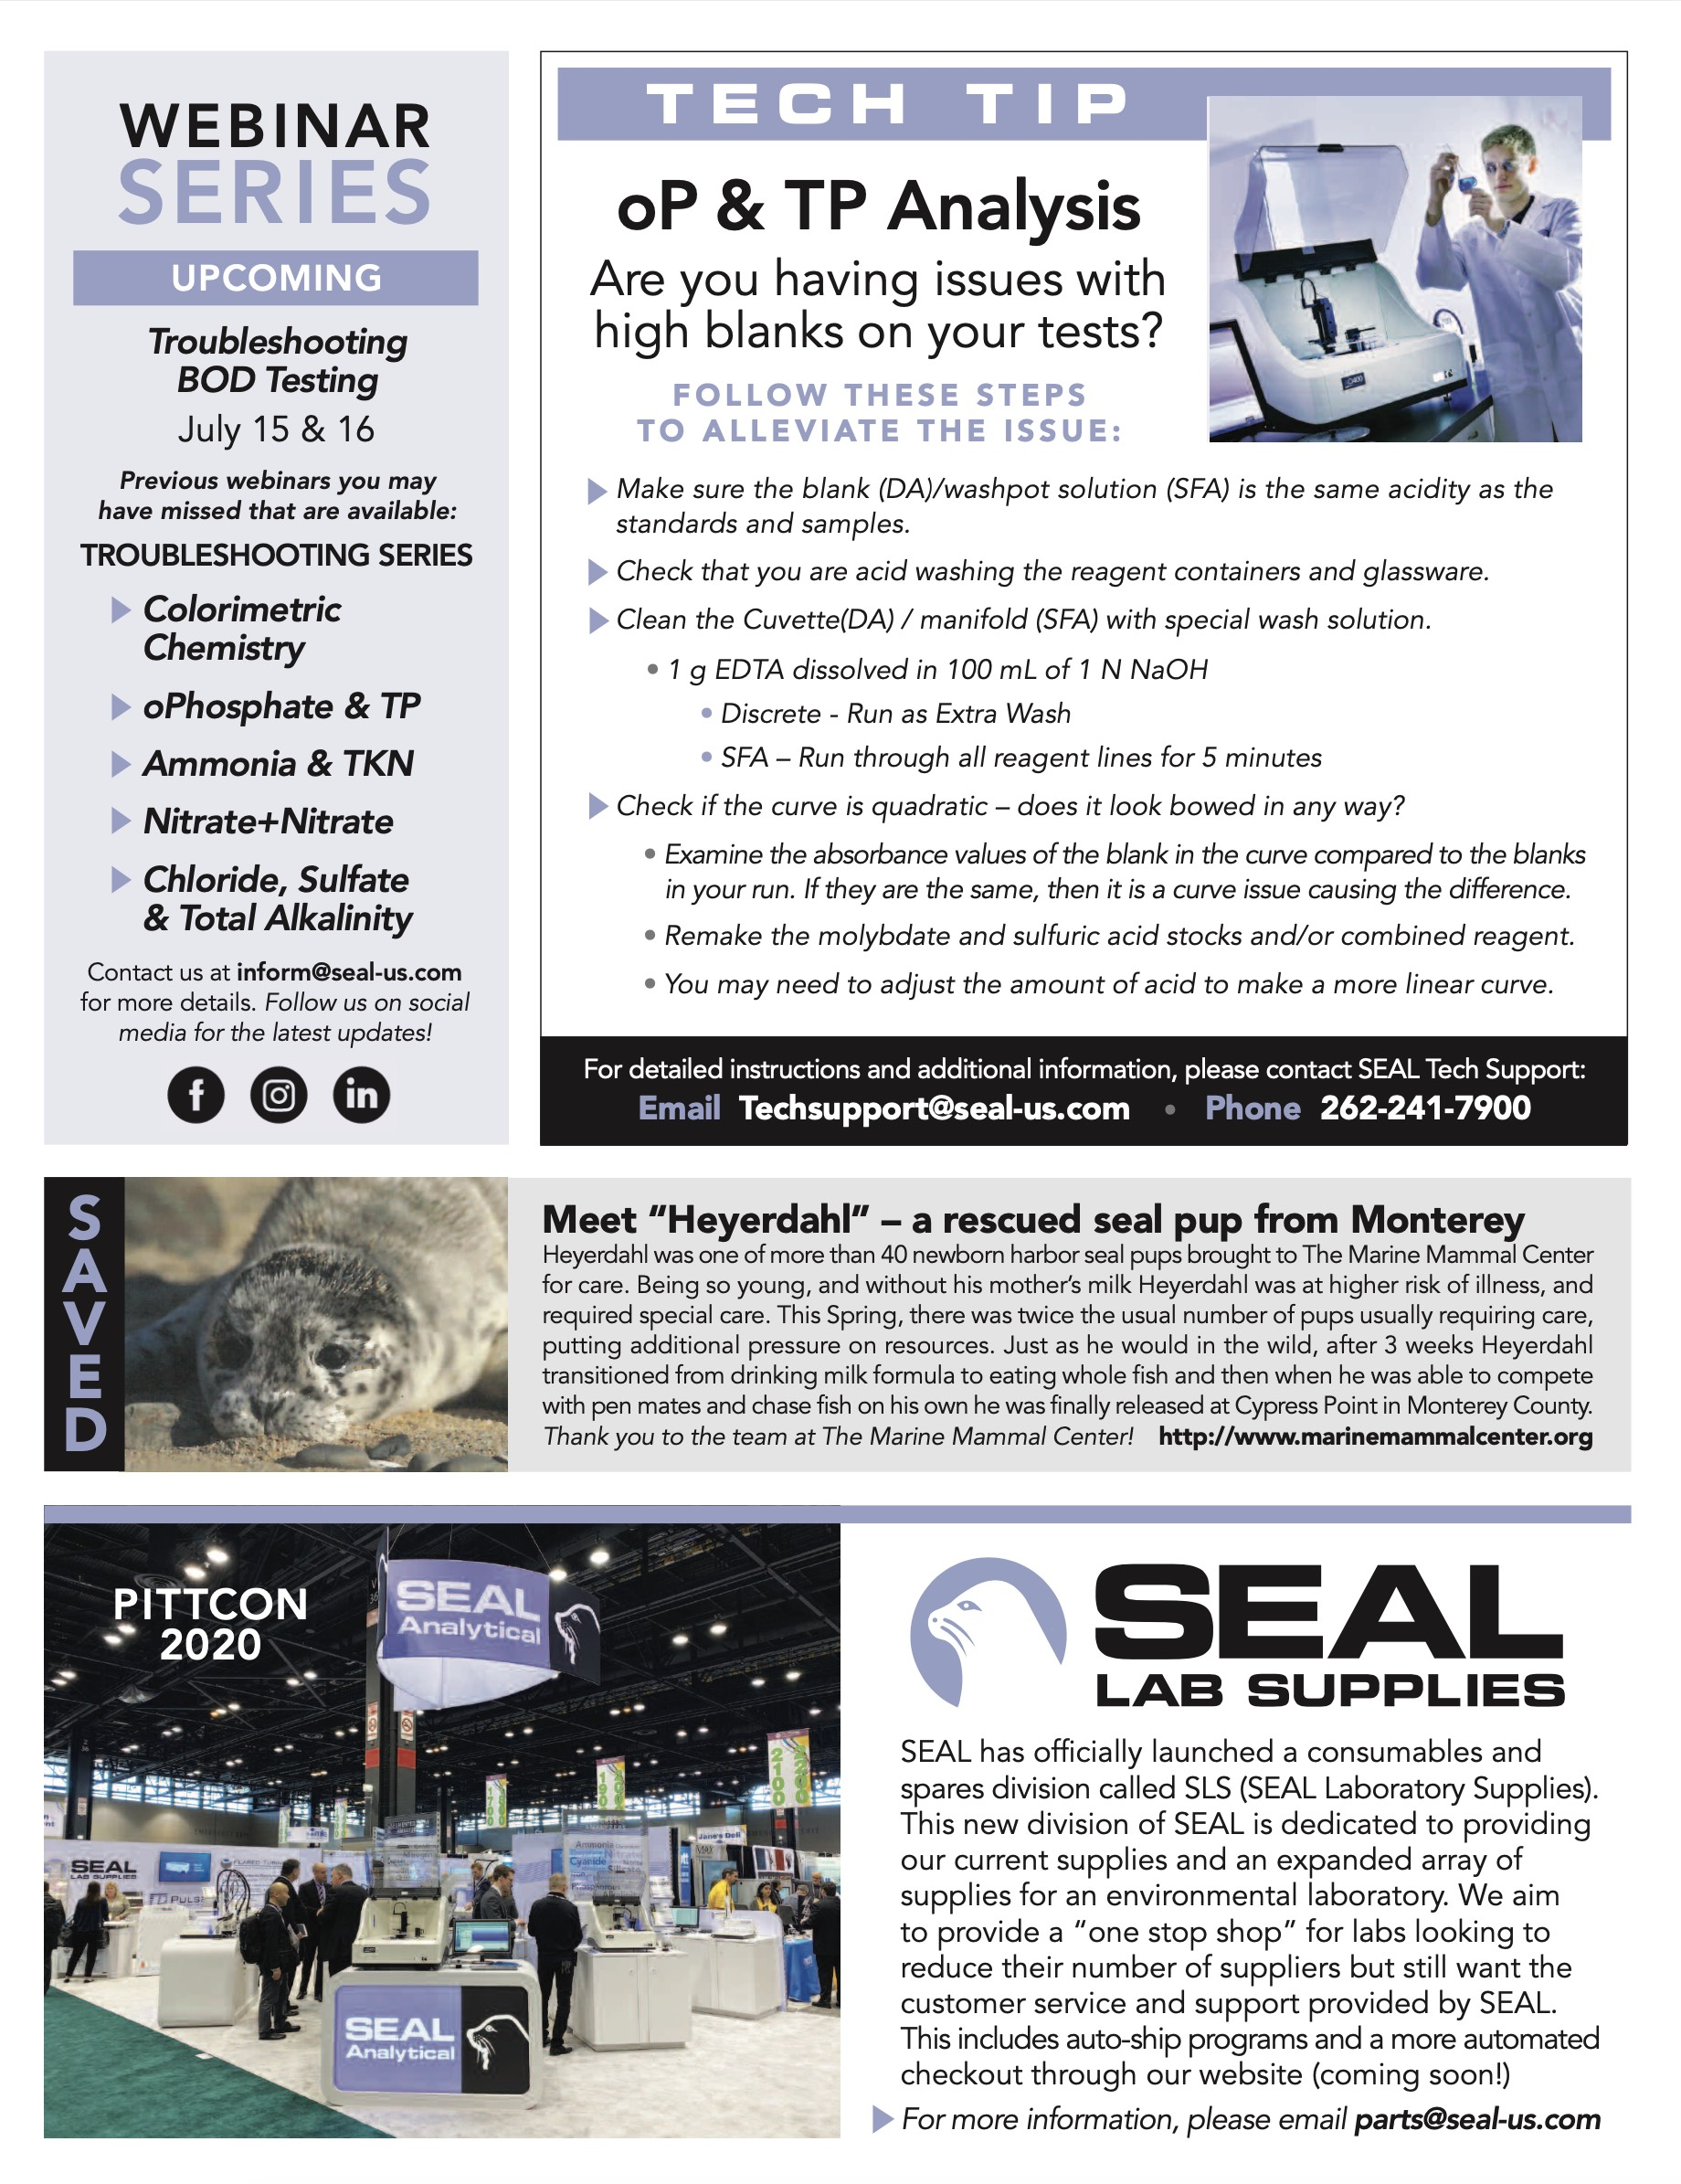 SEAL Analytical Newsletter Summer 2020 Page 3